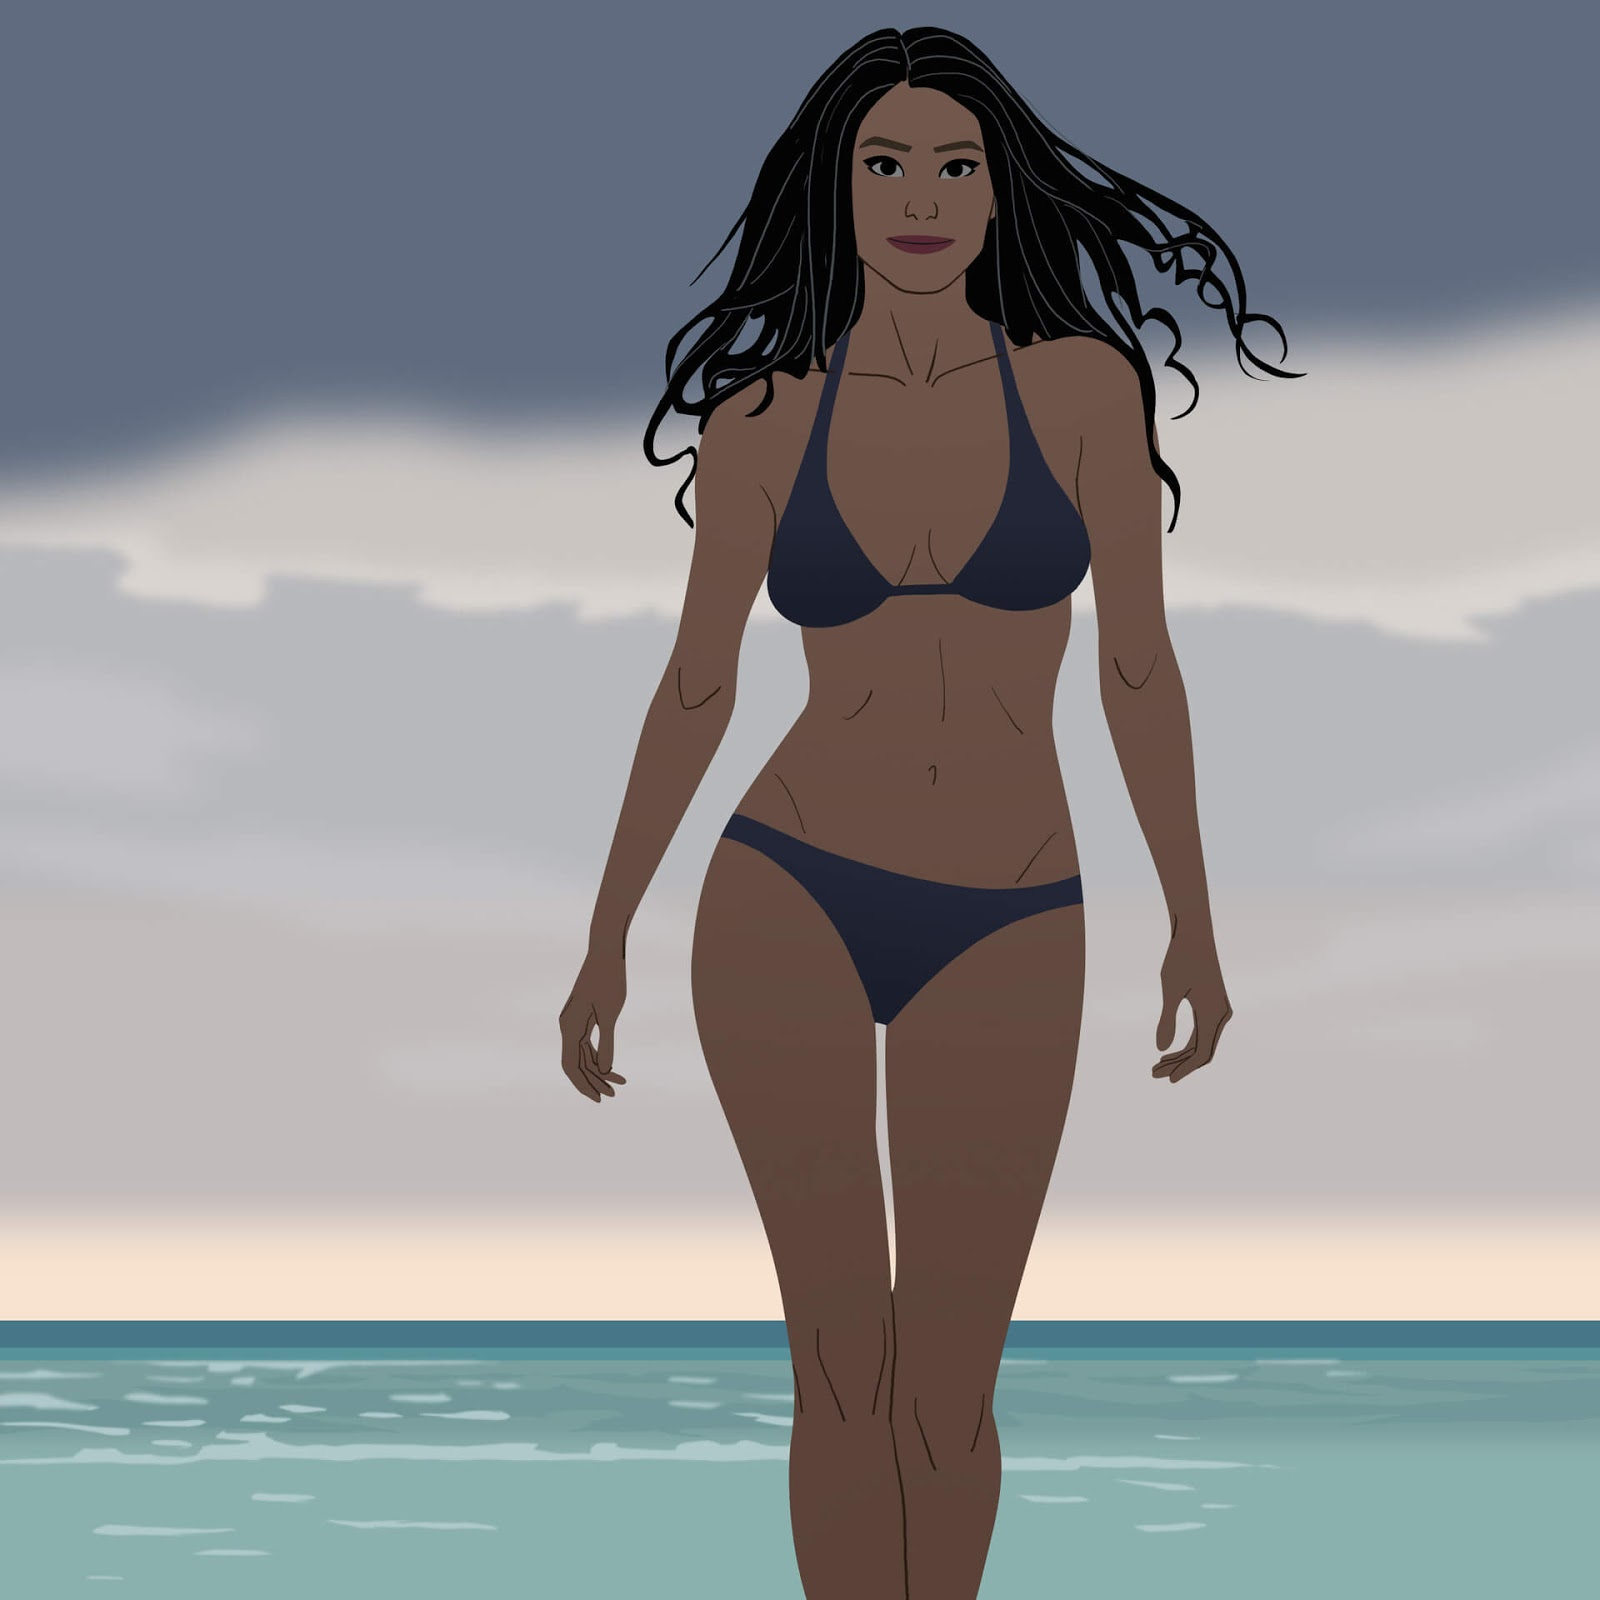 34 Mindblowing Illustrations Depict Female Inner Beauty And Power